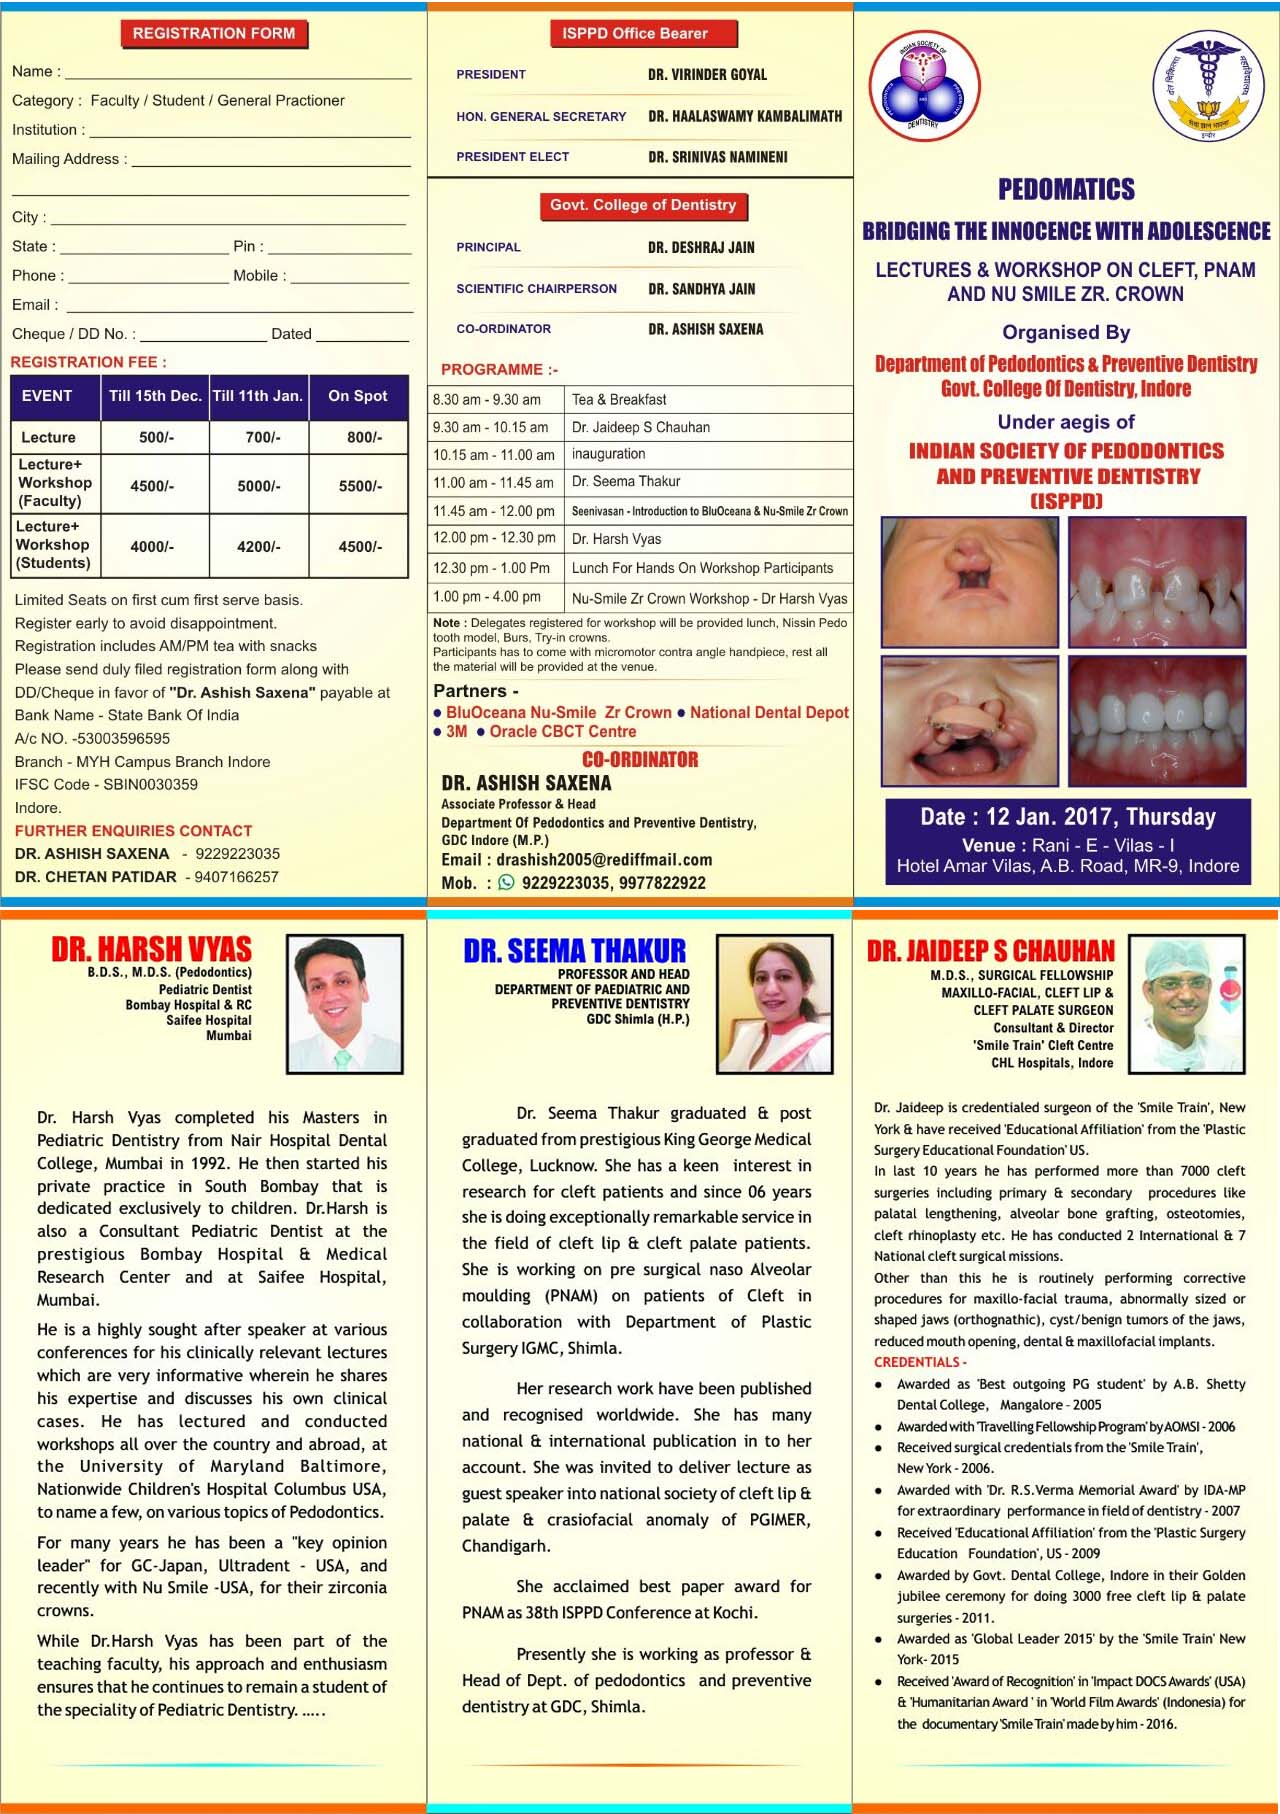 'Pedomatics'- Bridging the Innocent with Adolescence: Lectures & workshop on cleft, PNAM and NuSmile Zr crown